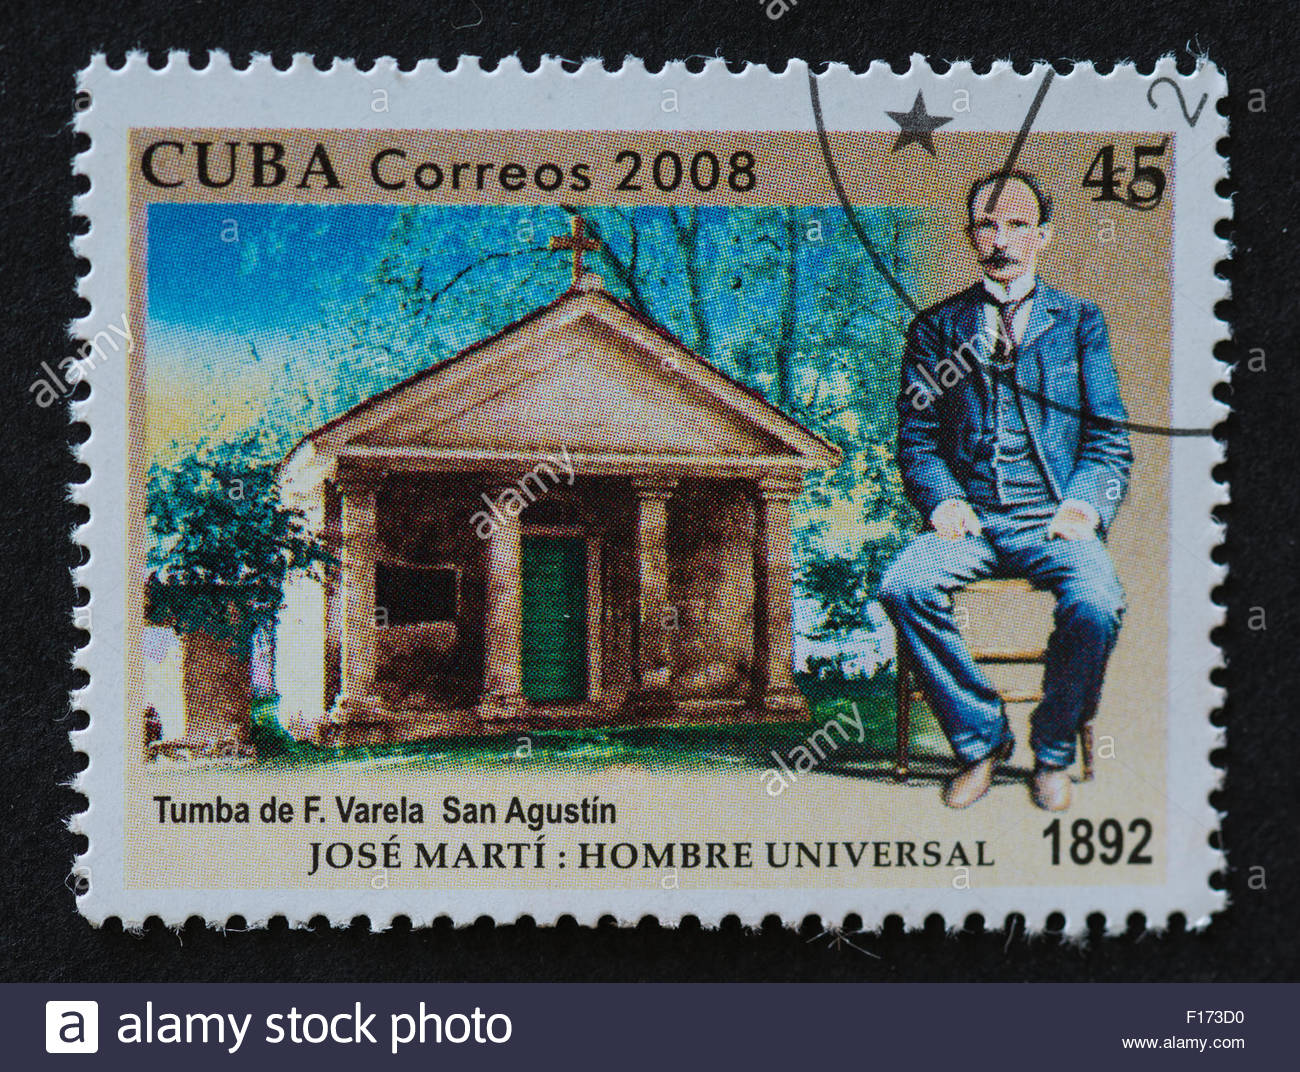 Cuba history stamp: the collectible item depicts Jose Marti and the tomb of Felix Varela - Stock Image